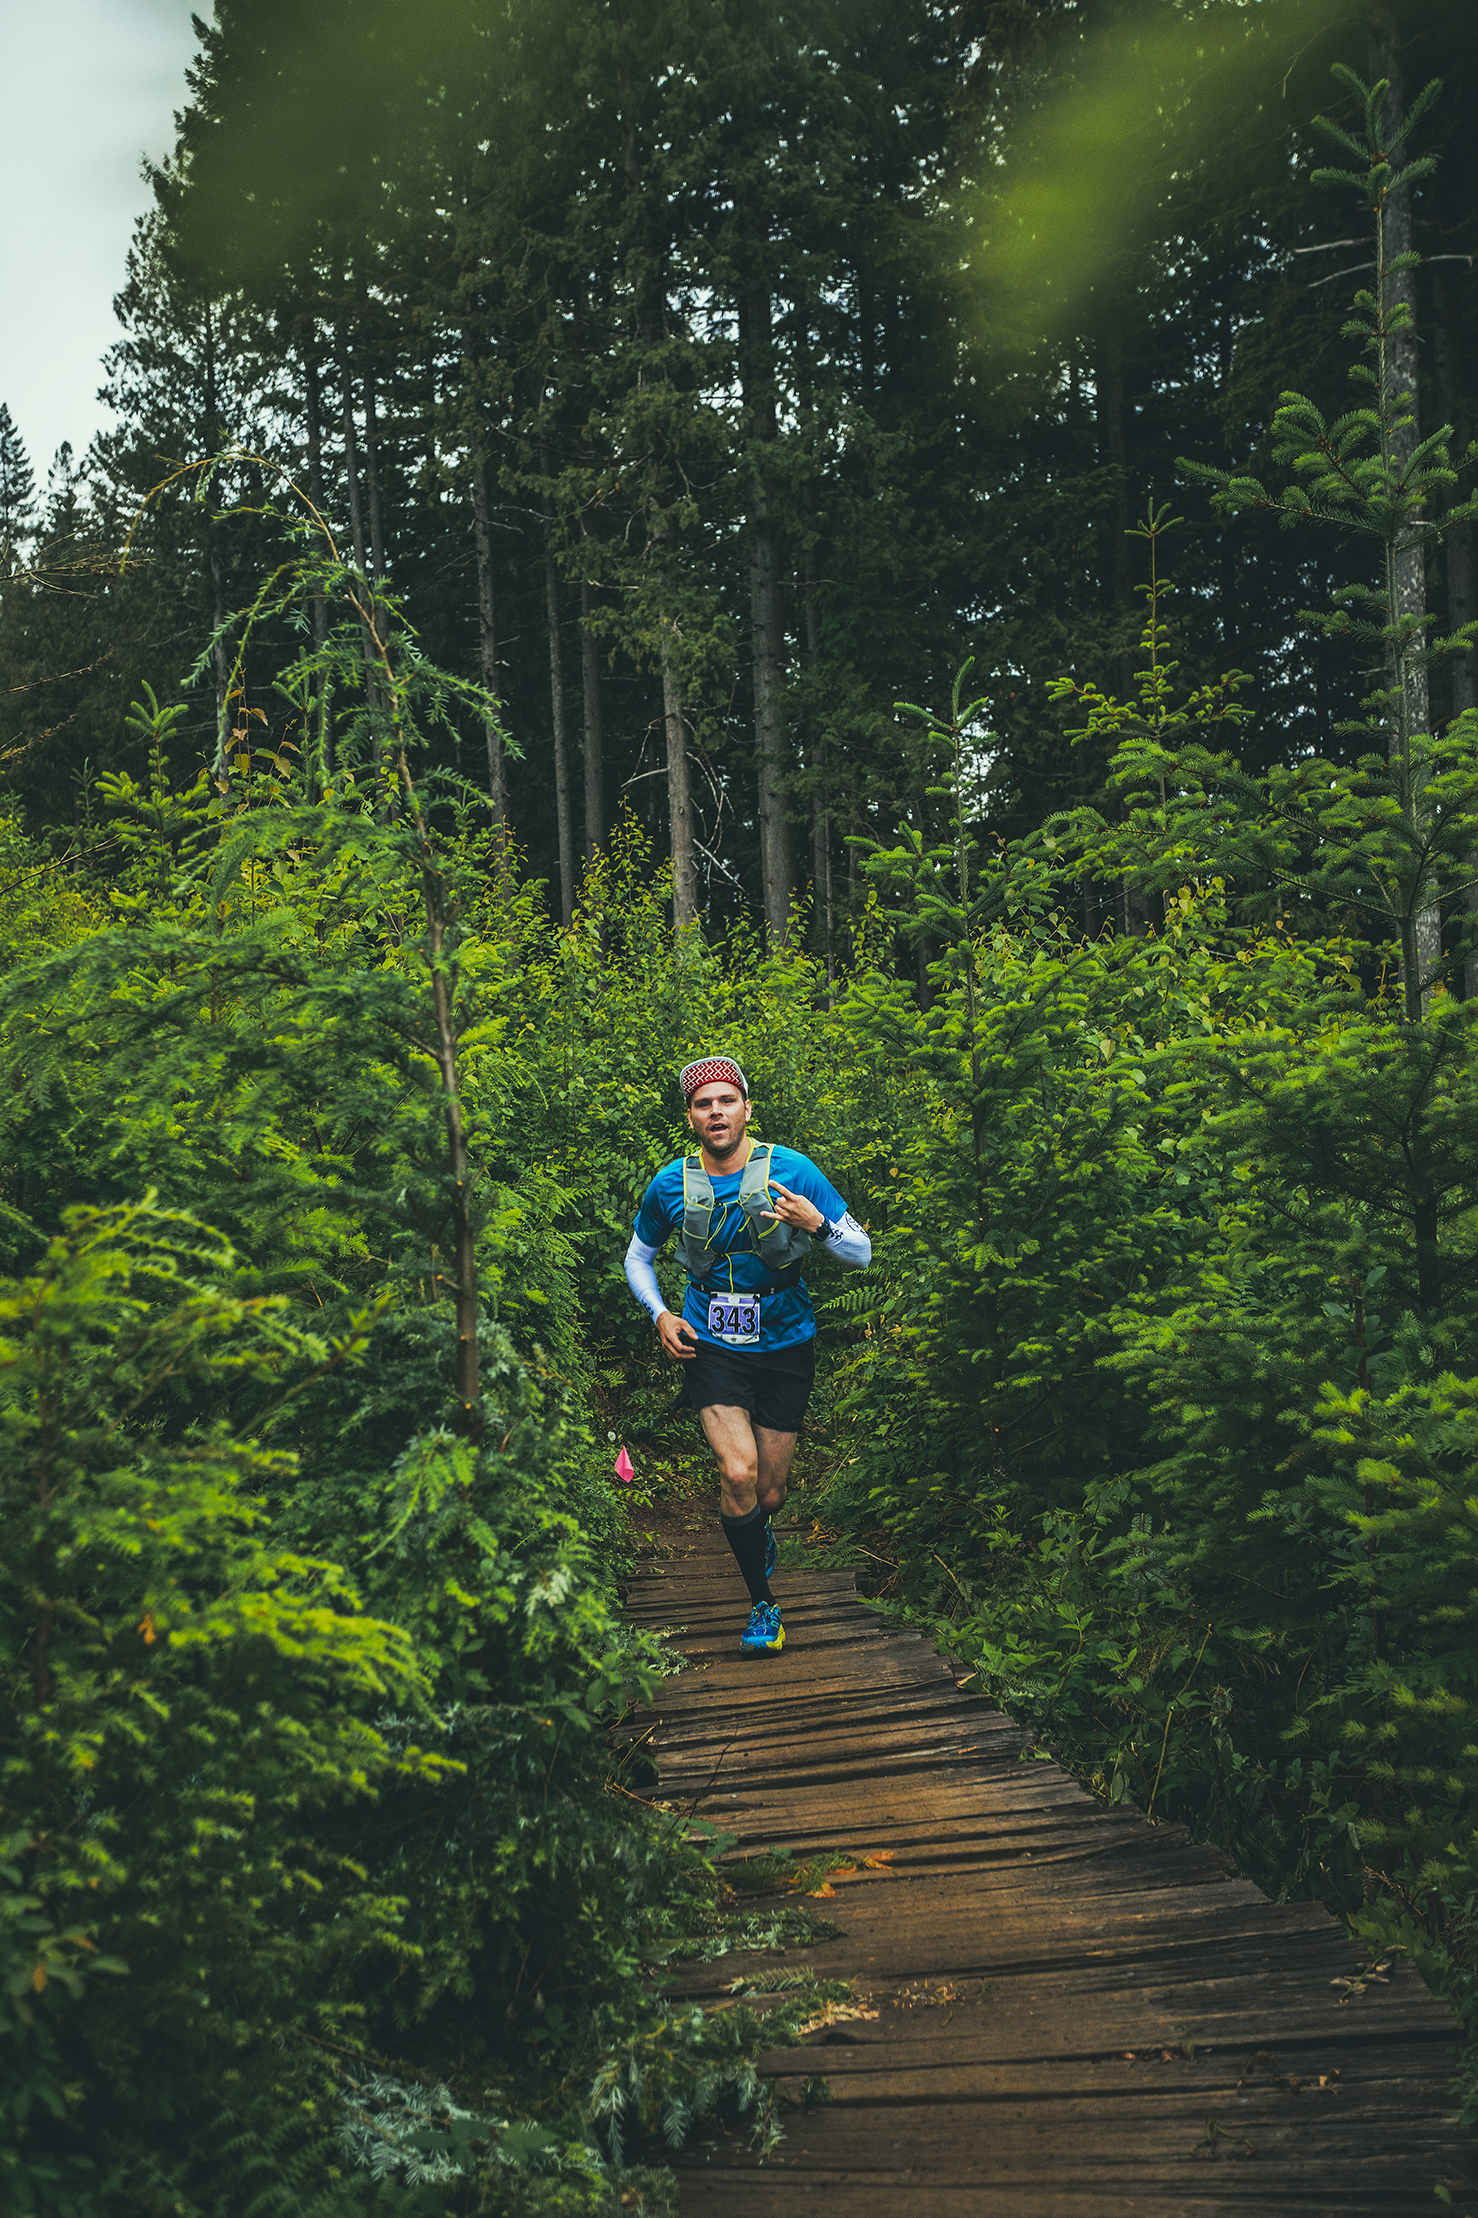 Fraser Valley Trail Races - Bear Mountain - IMG_1473 by Brice Ferre Studio - Vancouver Portrait Adventure and Athlete Photographer.jpg